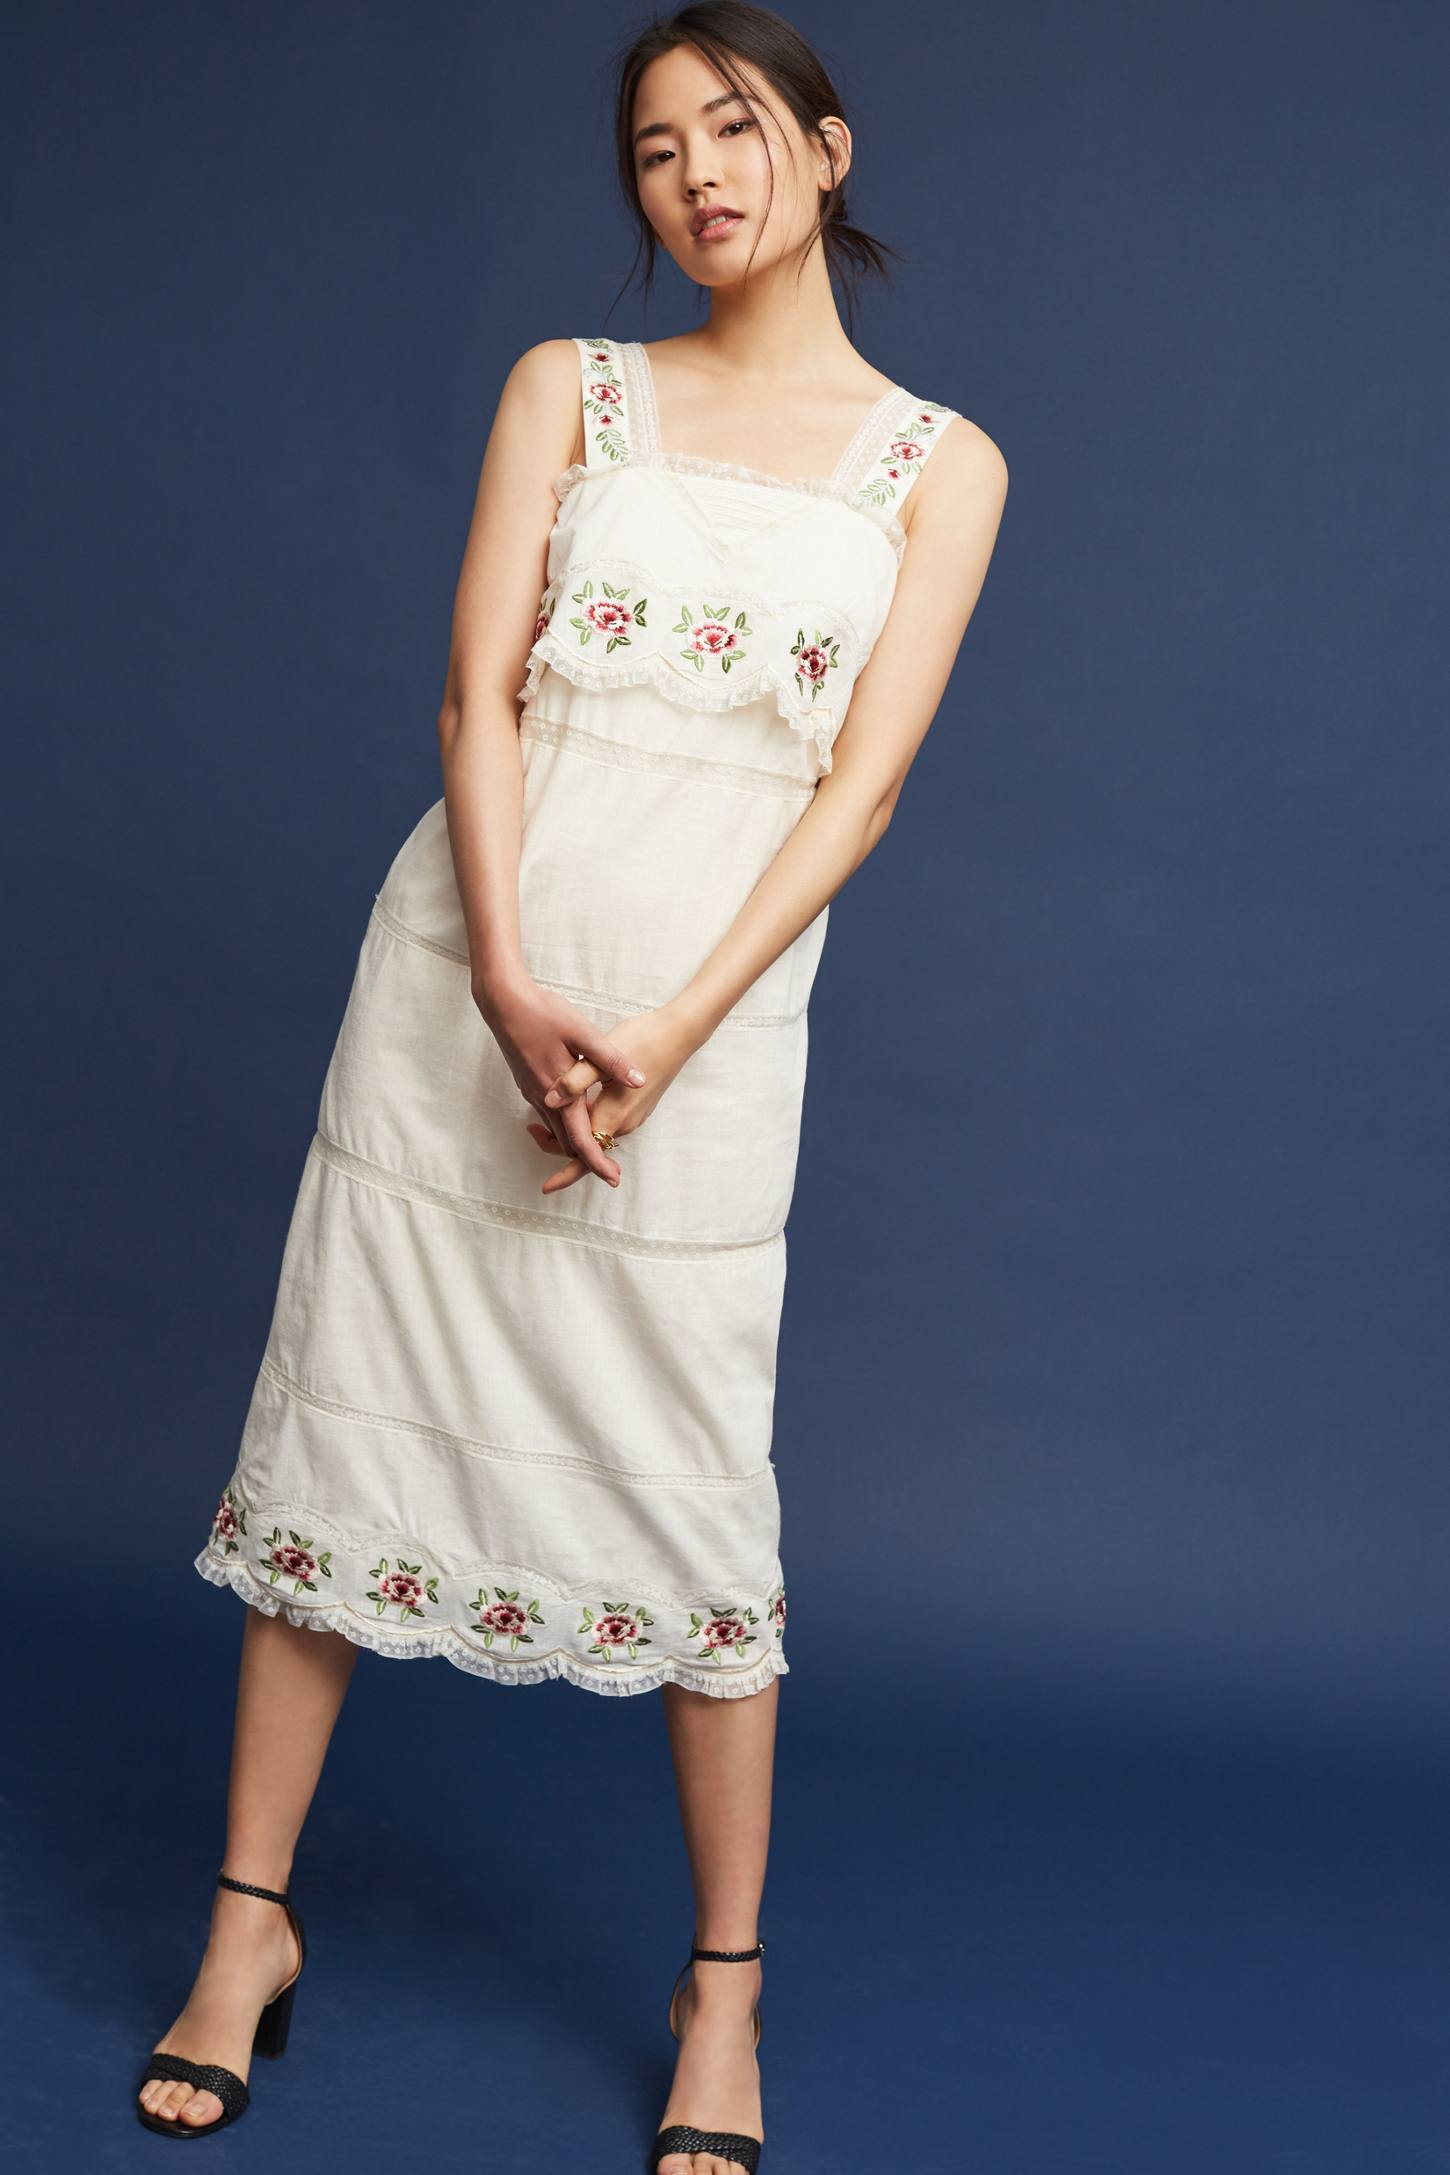 Slide View: 4: Embroidered Cotton Midi Dress